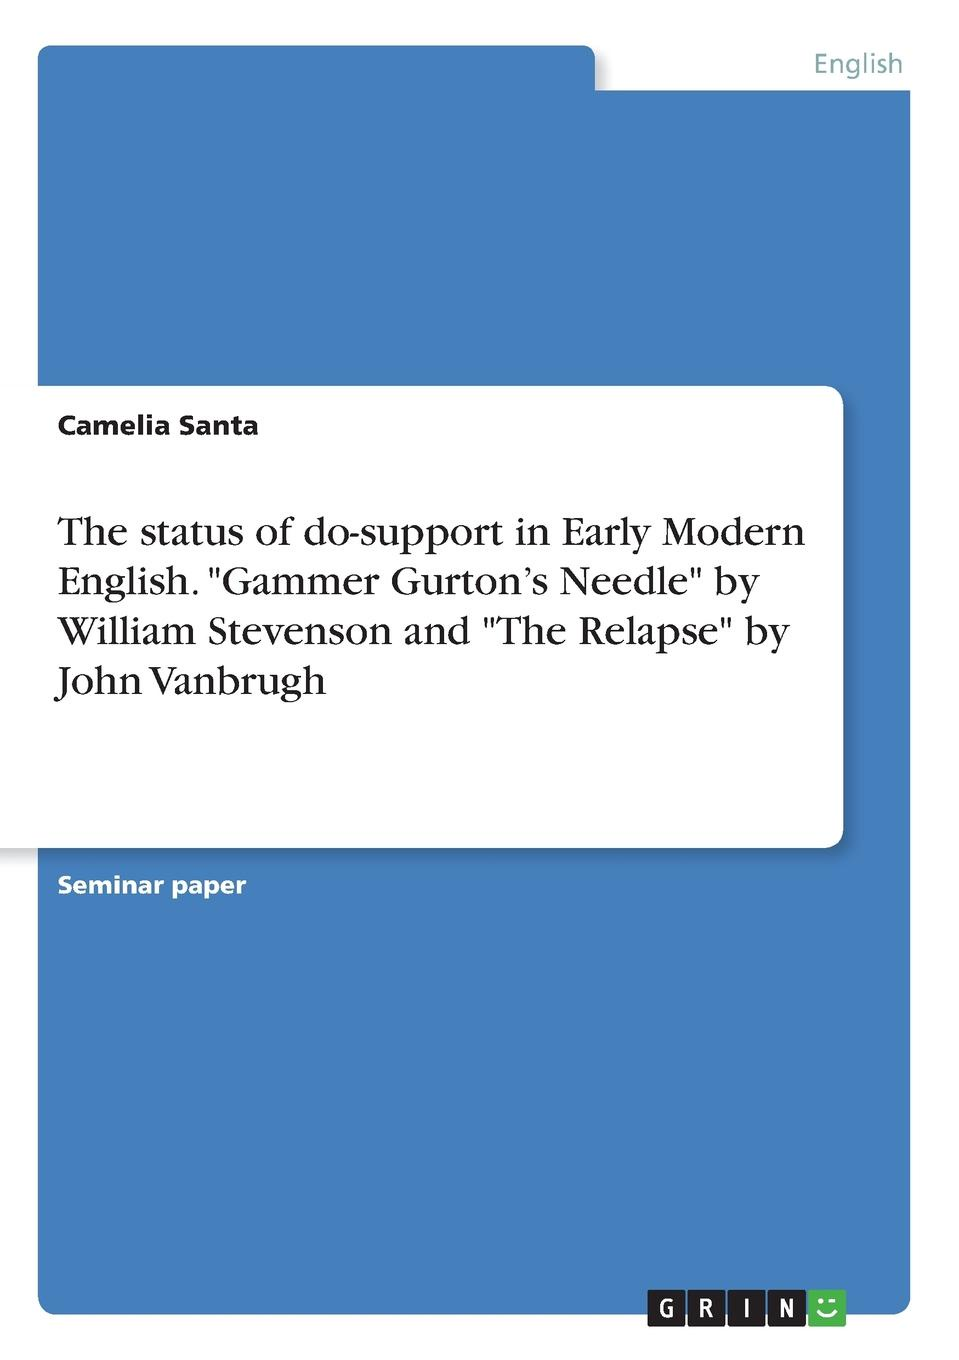 Camelia Santa The status of do-support in Early Modern English. Gammer G Needle by William Stevenson and Relapse John Vanbrugh